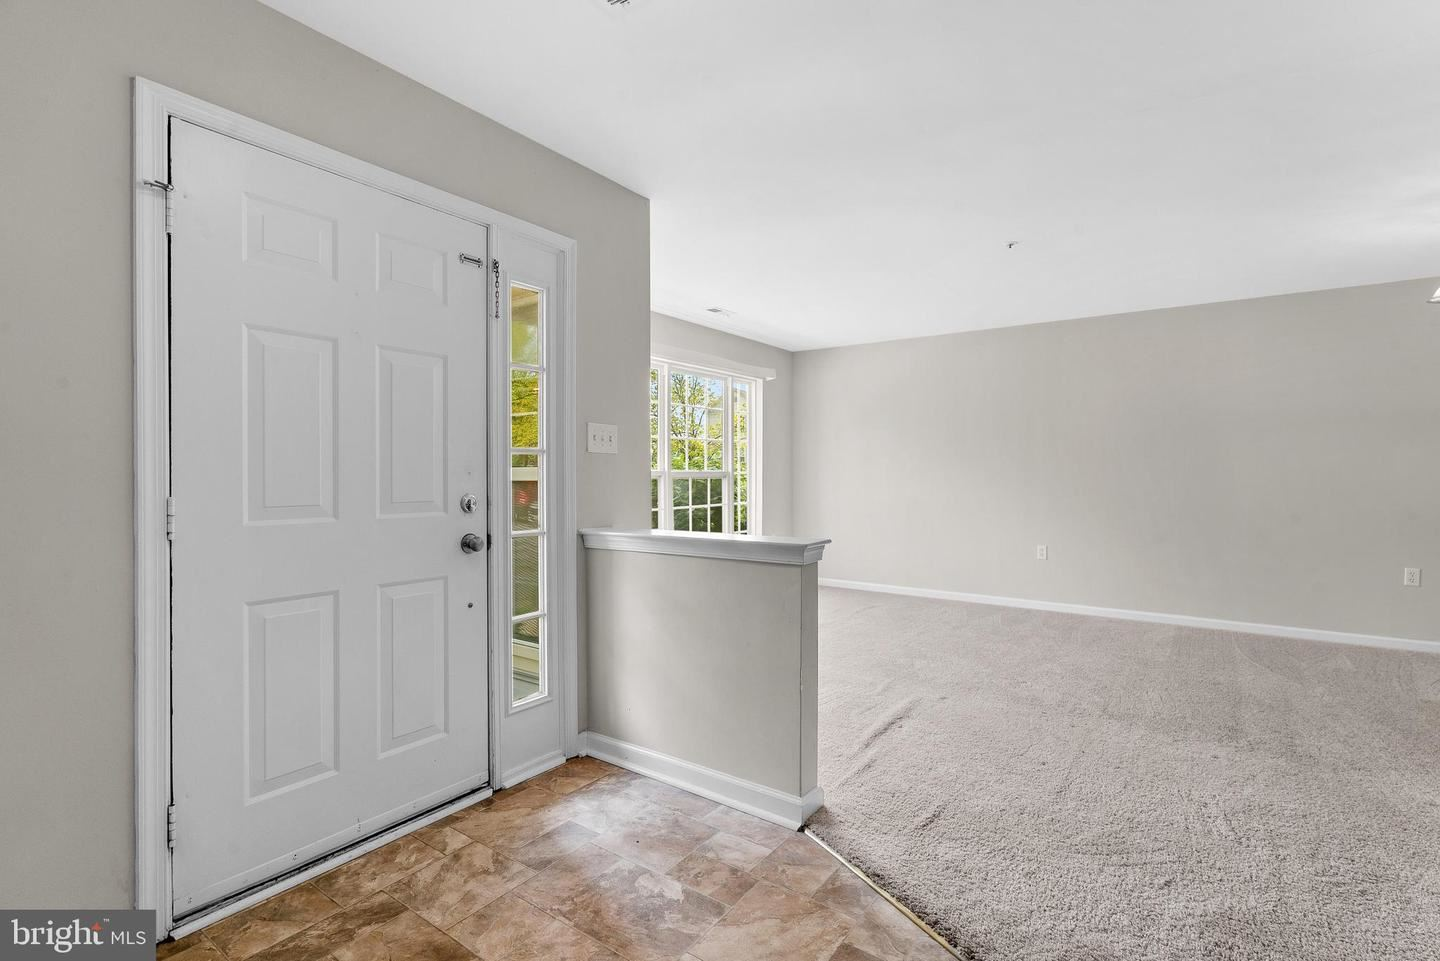 Photo of 2633 S EVERLY DR #8 11, FREDERICK, MD 21701 (MLS # MDFR270922)